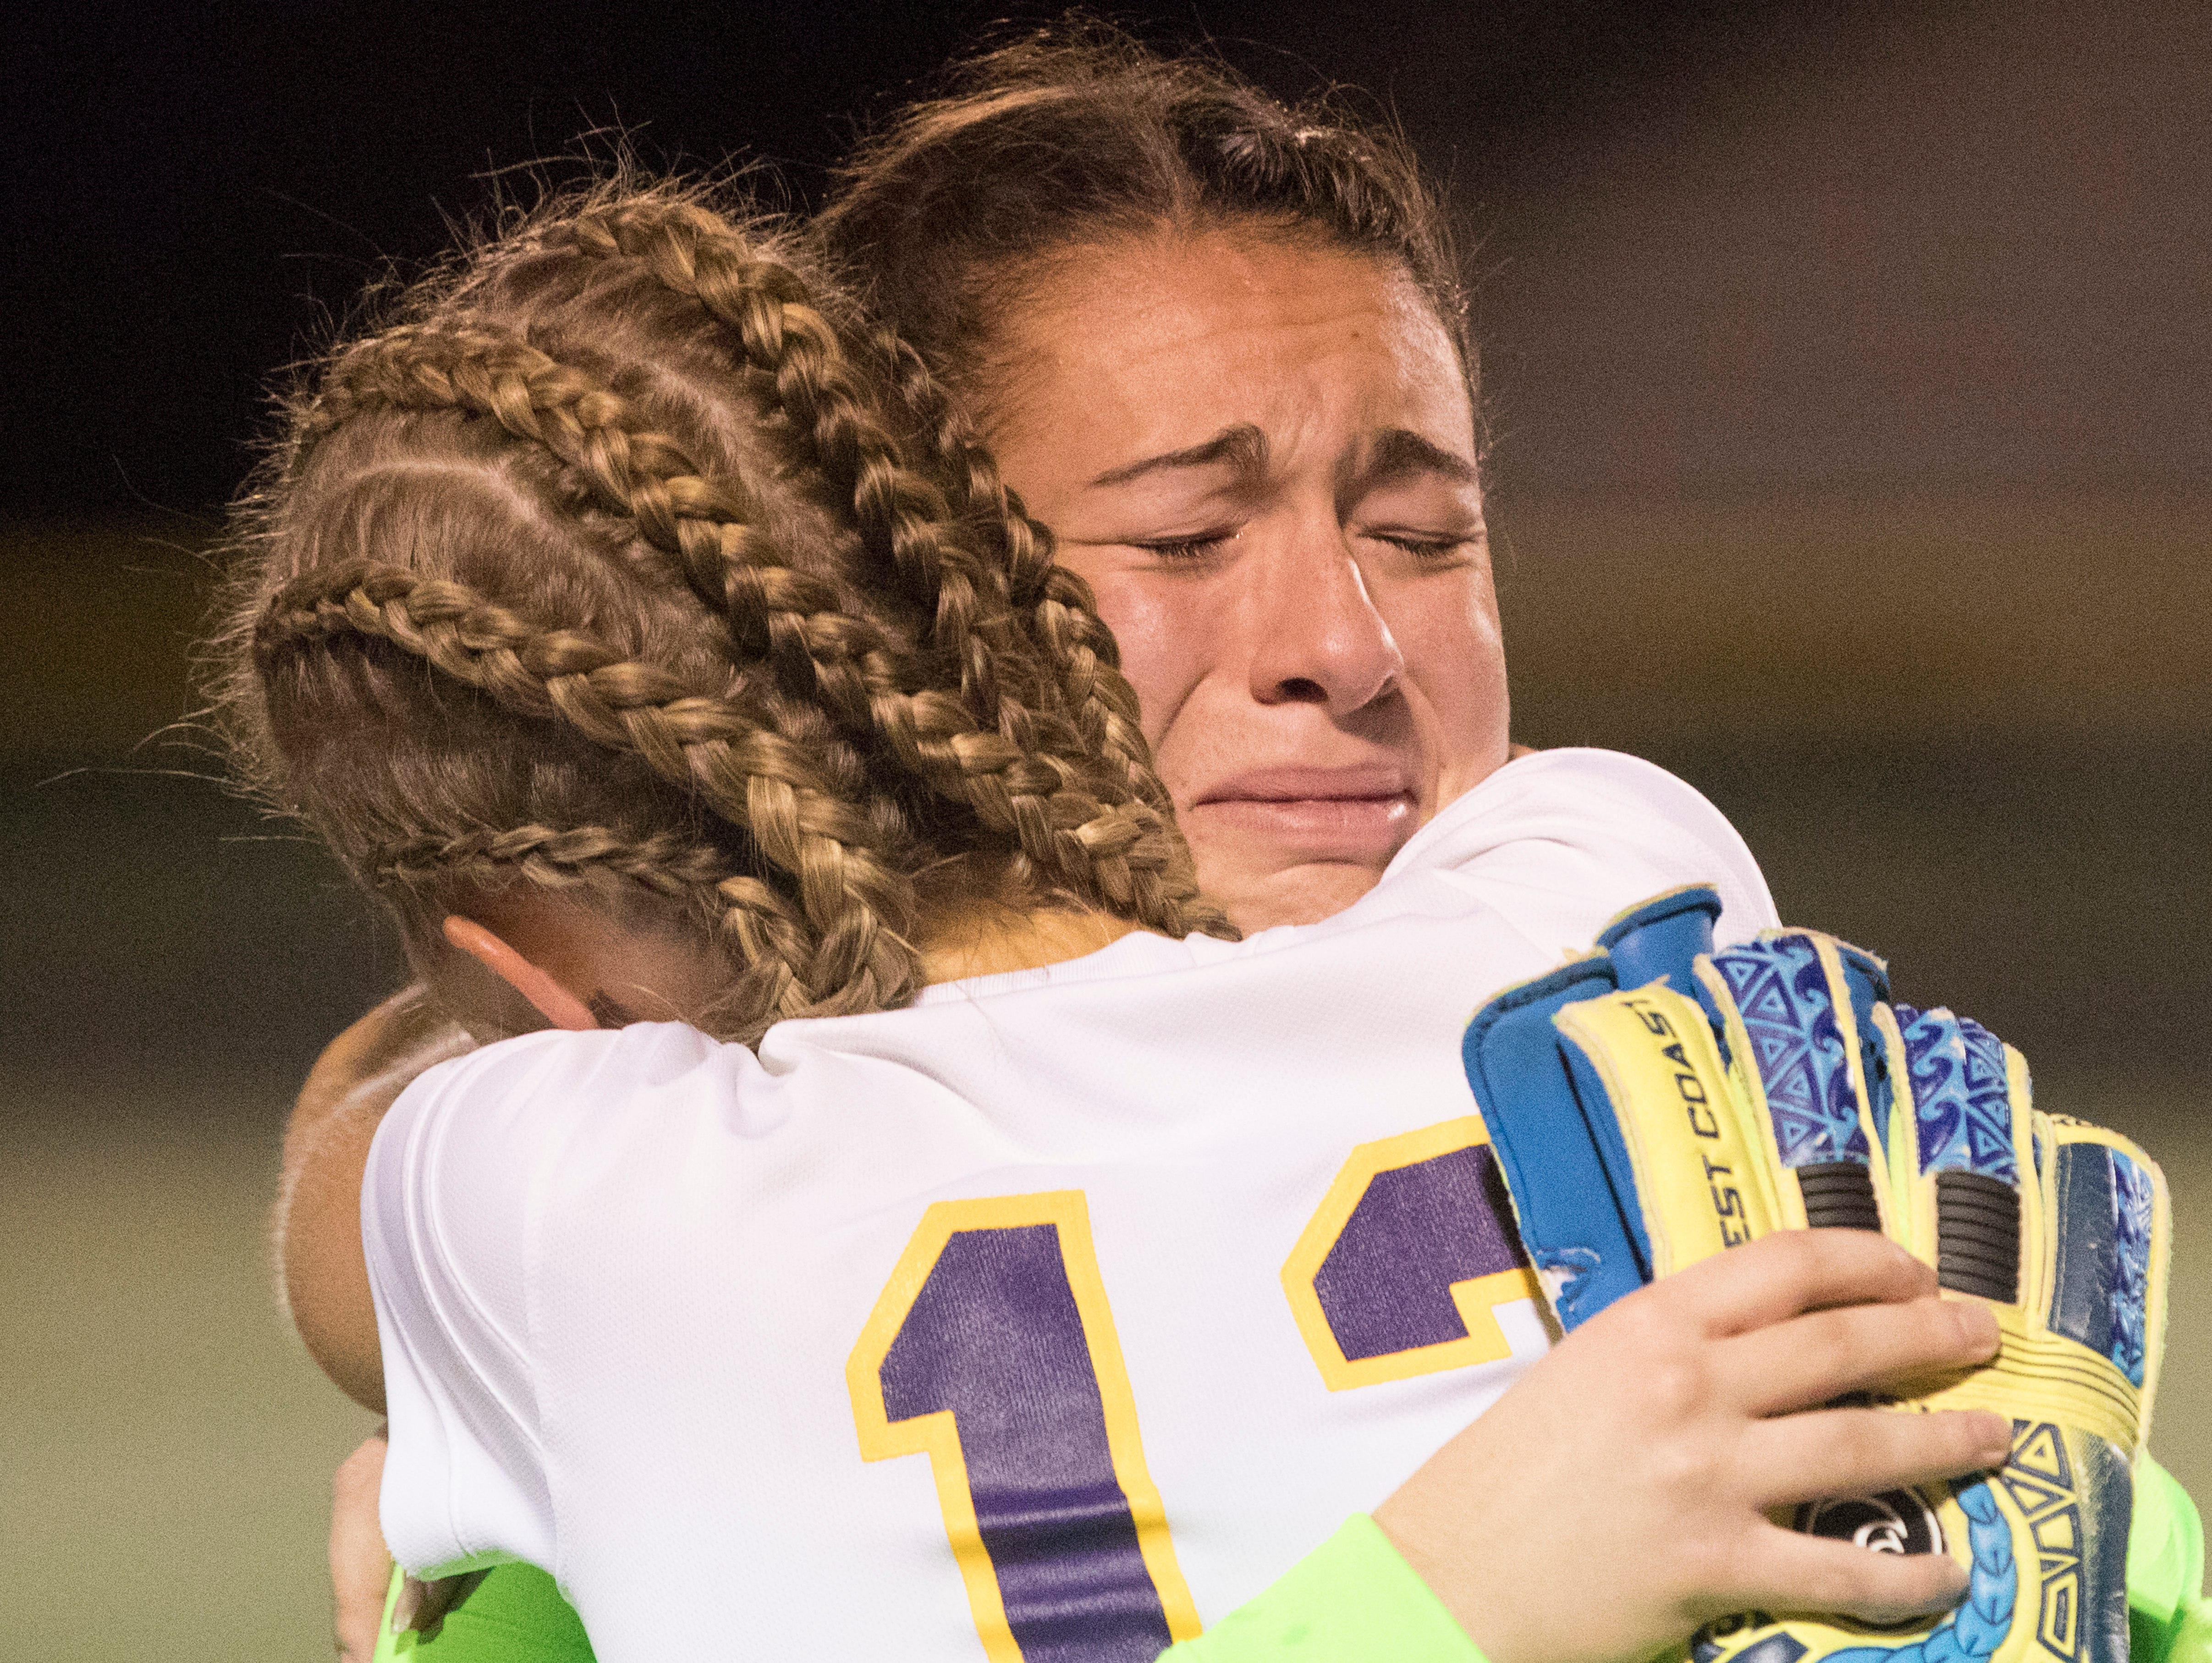 Goalkeeper Sydney Free and senior Elayna Gunnoe embrace after their loss against Big Walnut Tuesday night in a Division II soccer regional semifinals match.